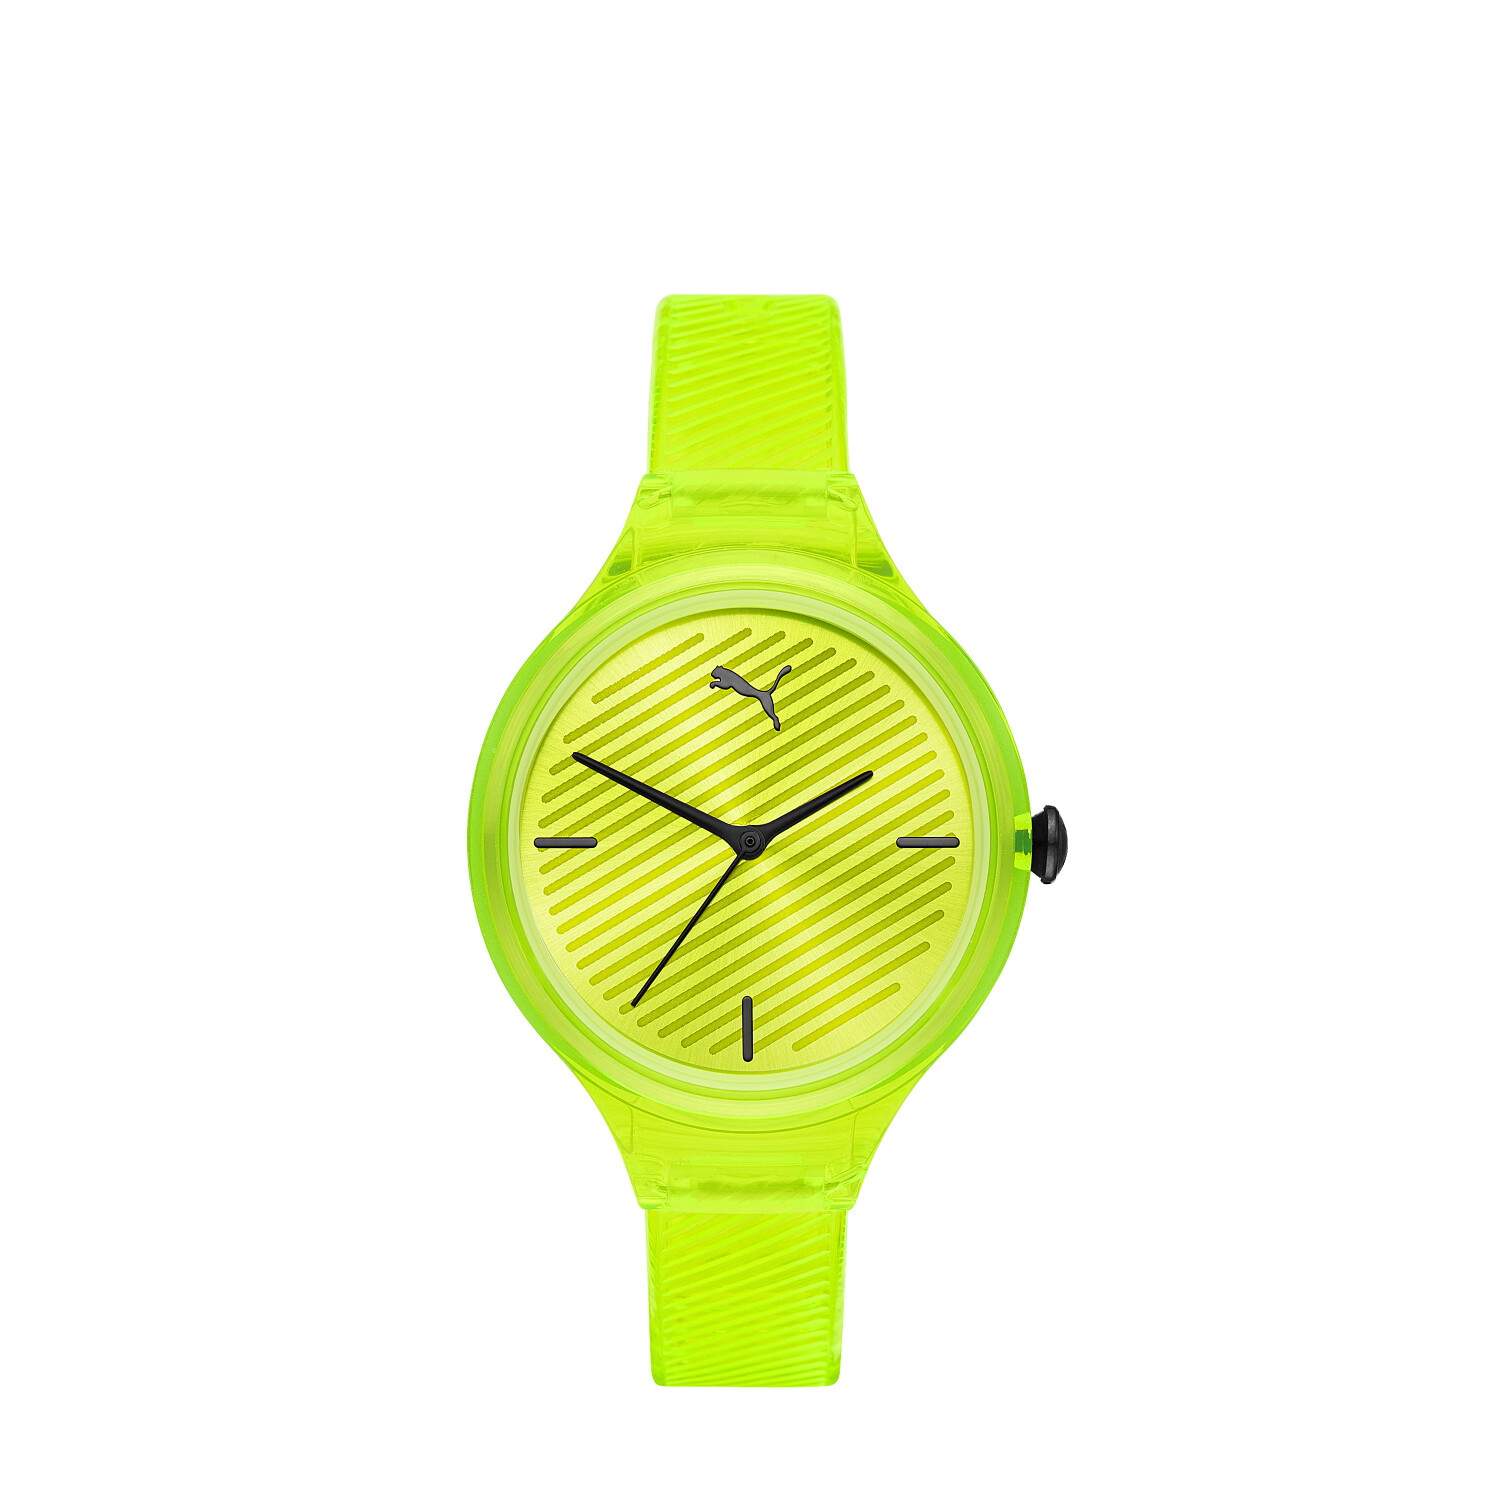 Puma Womens Contour P1017 Yellow Polyurethane Quartz Fashion Watch